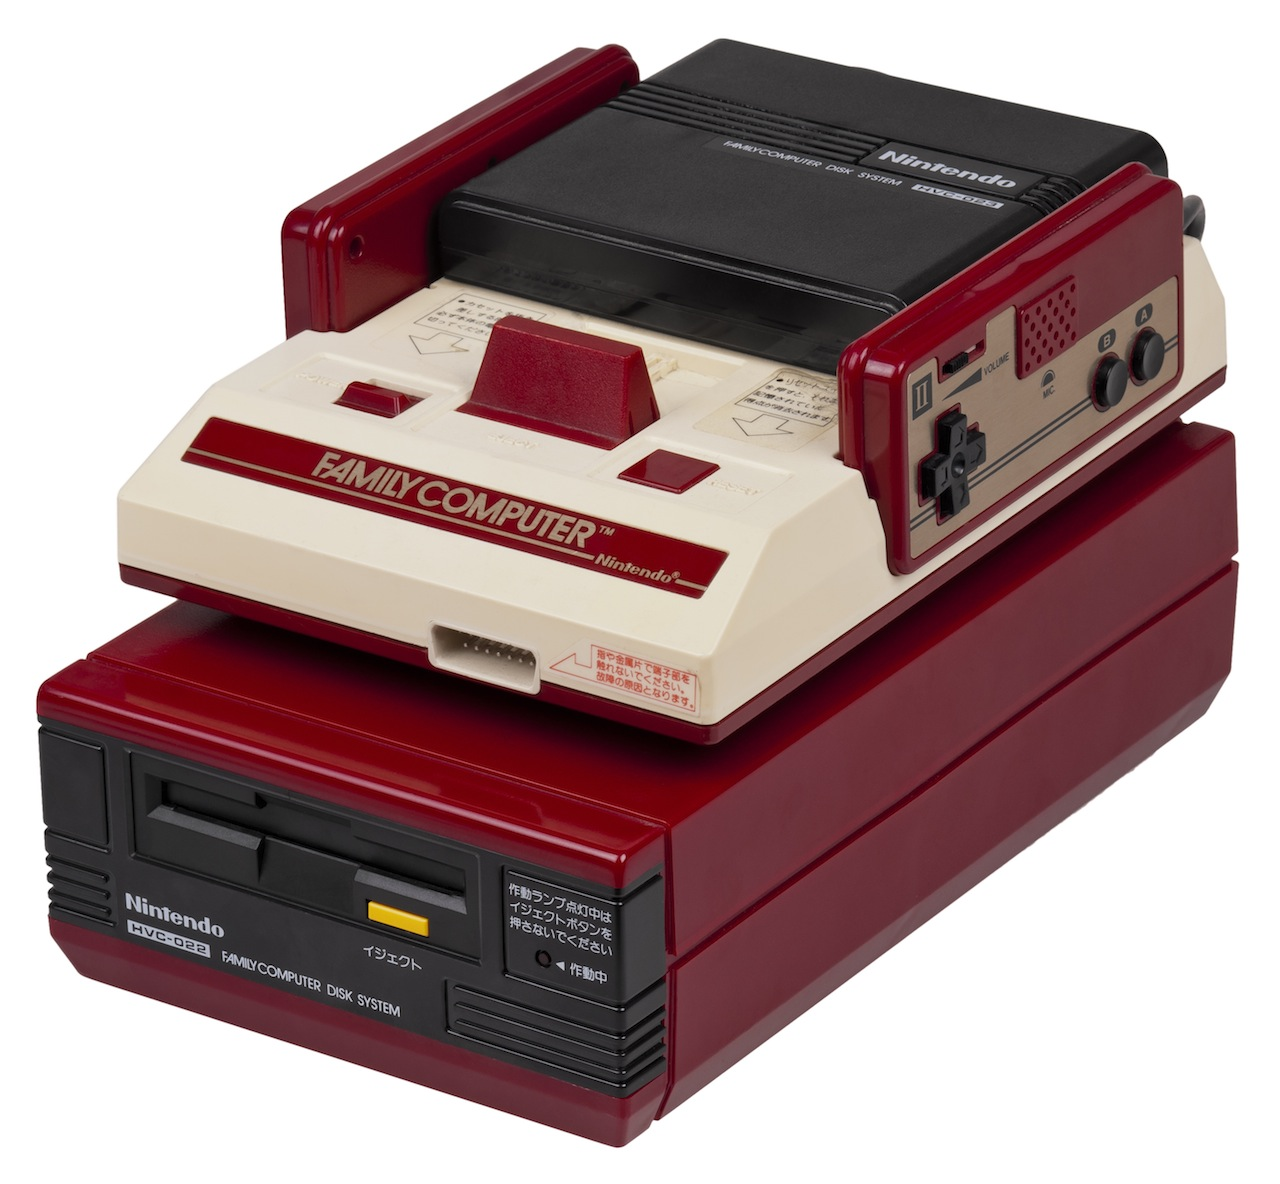 Early on, the Famicom Disk System was a relatively popular way to create larger games with better sound, but cartridges eventually surpassed its capabilities. It never made it to North America.